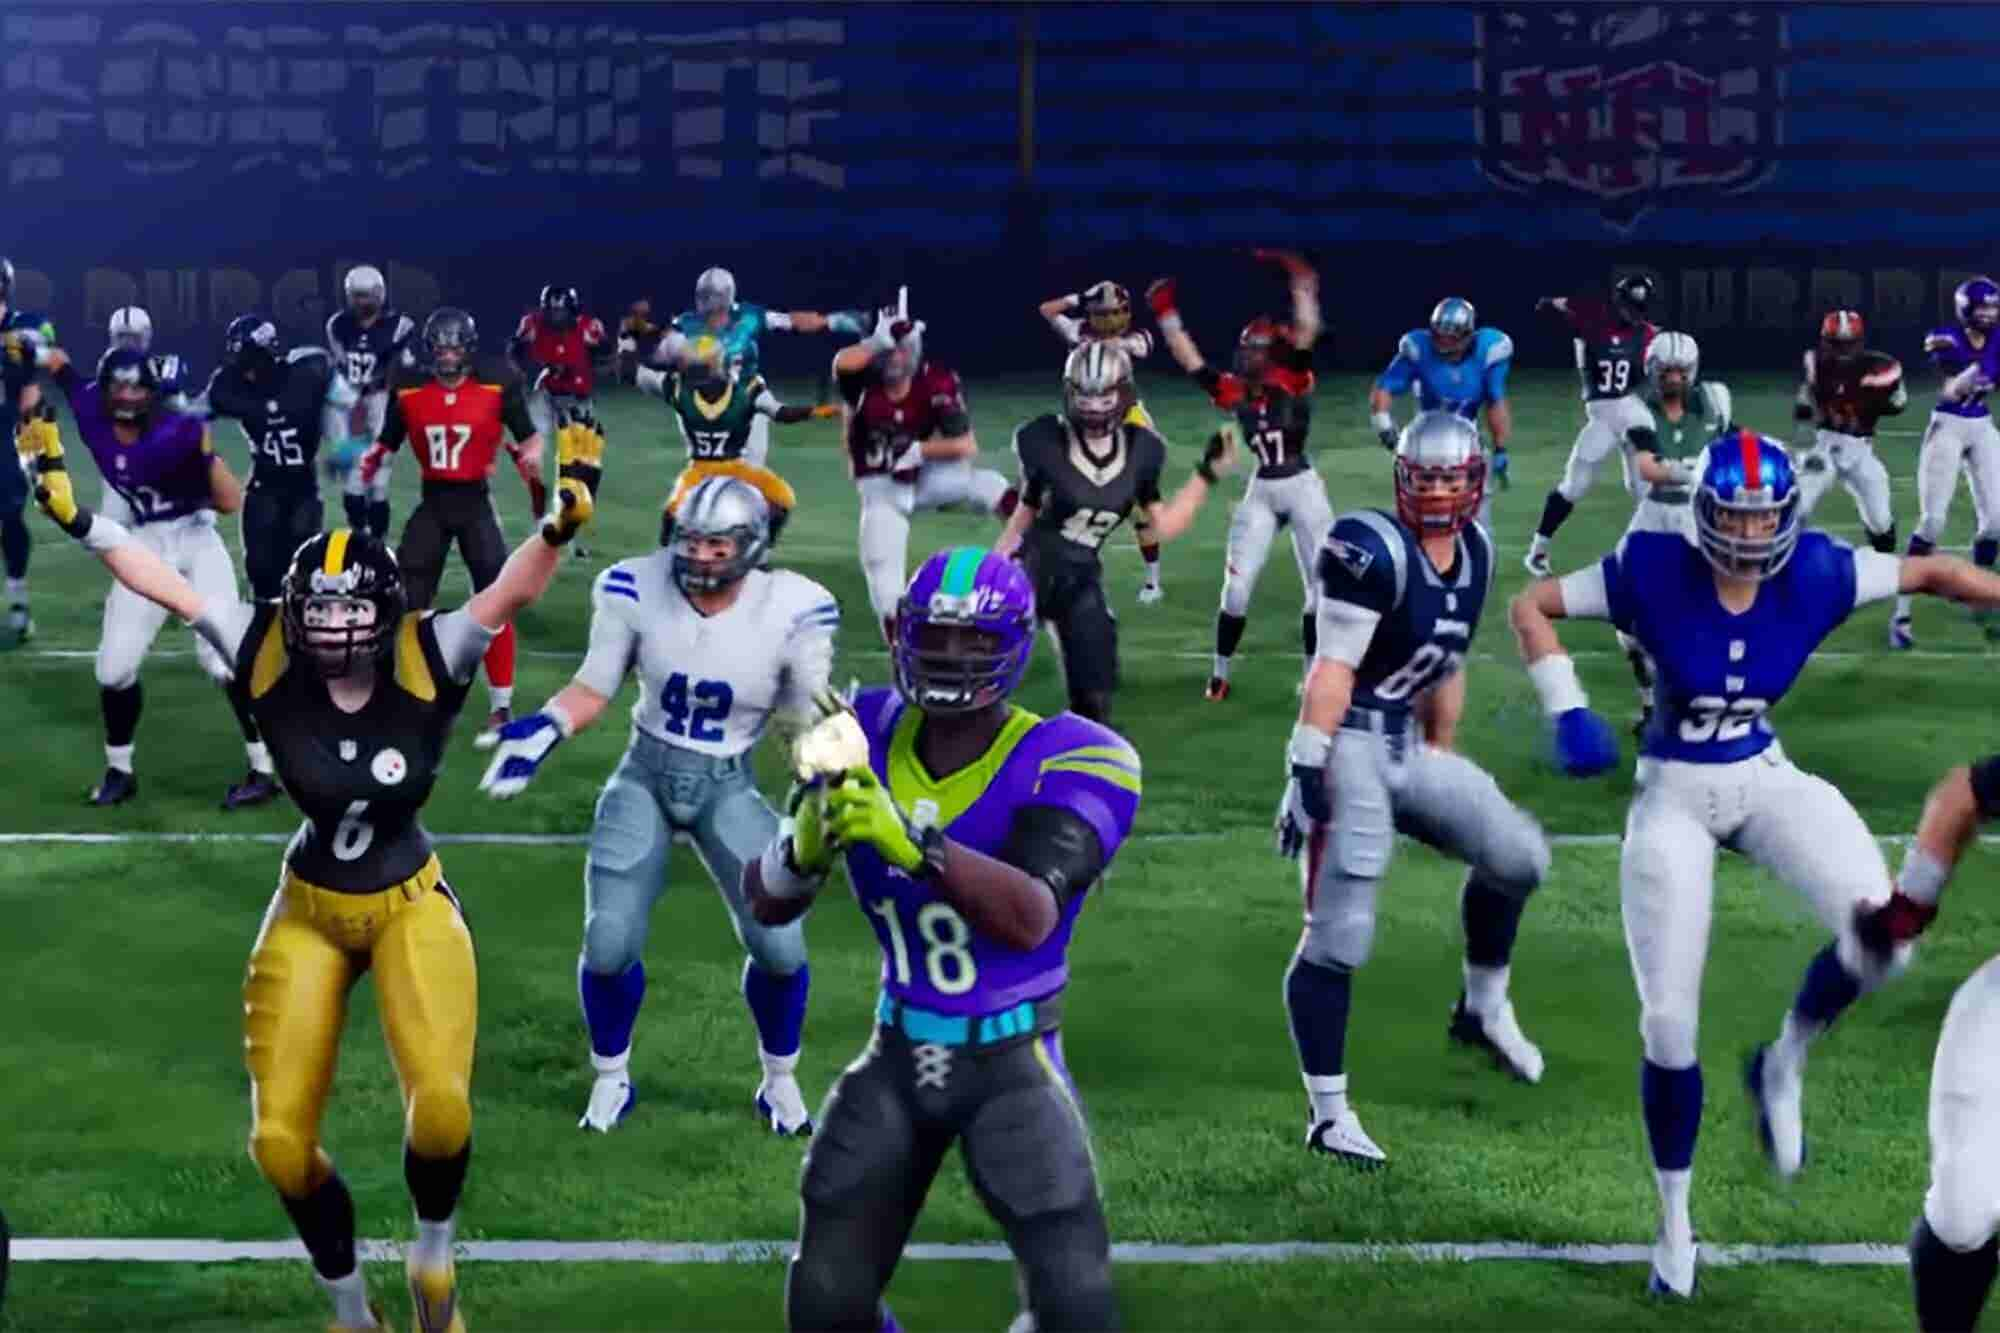 'Fortnite' Removes NFL Outfits After Less Than a Week, Sick Scenarios Possibly to Blame